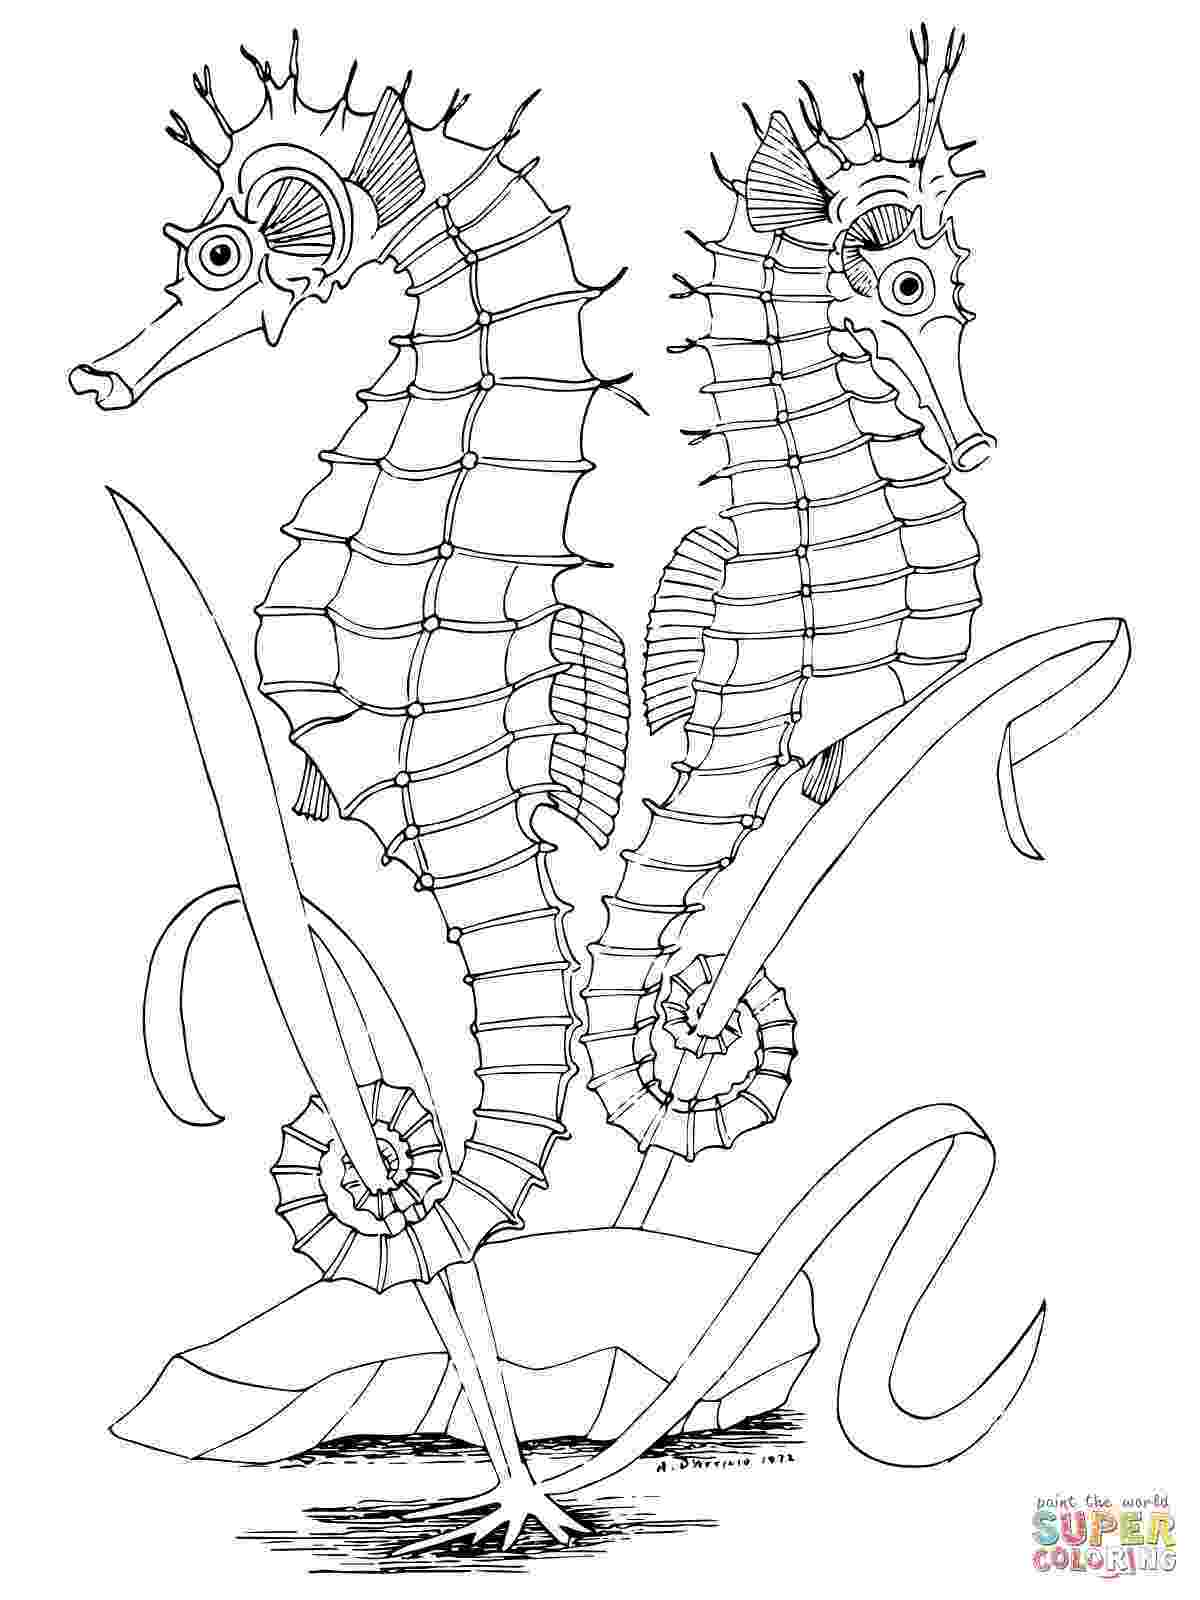 seahorses coloring pages two seahorses coloring page supercoloringcom seahorses coloring pages